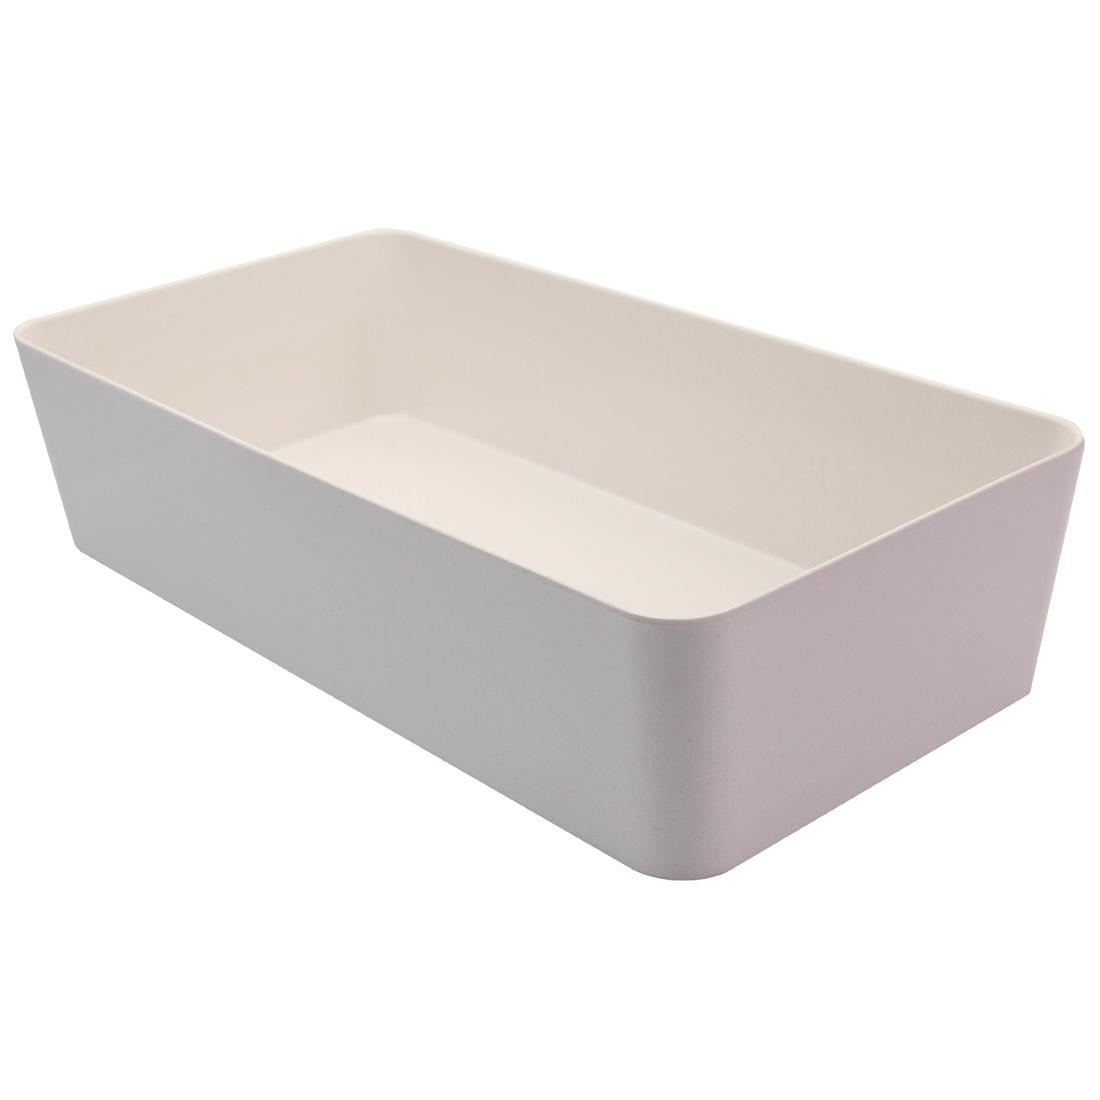 Image of Creative Melamine Bento Box Outer Box White 348x180x78mm (Pack of 3)